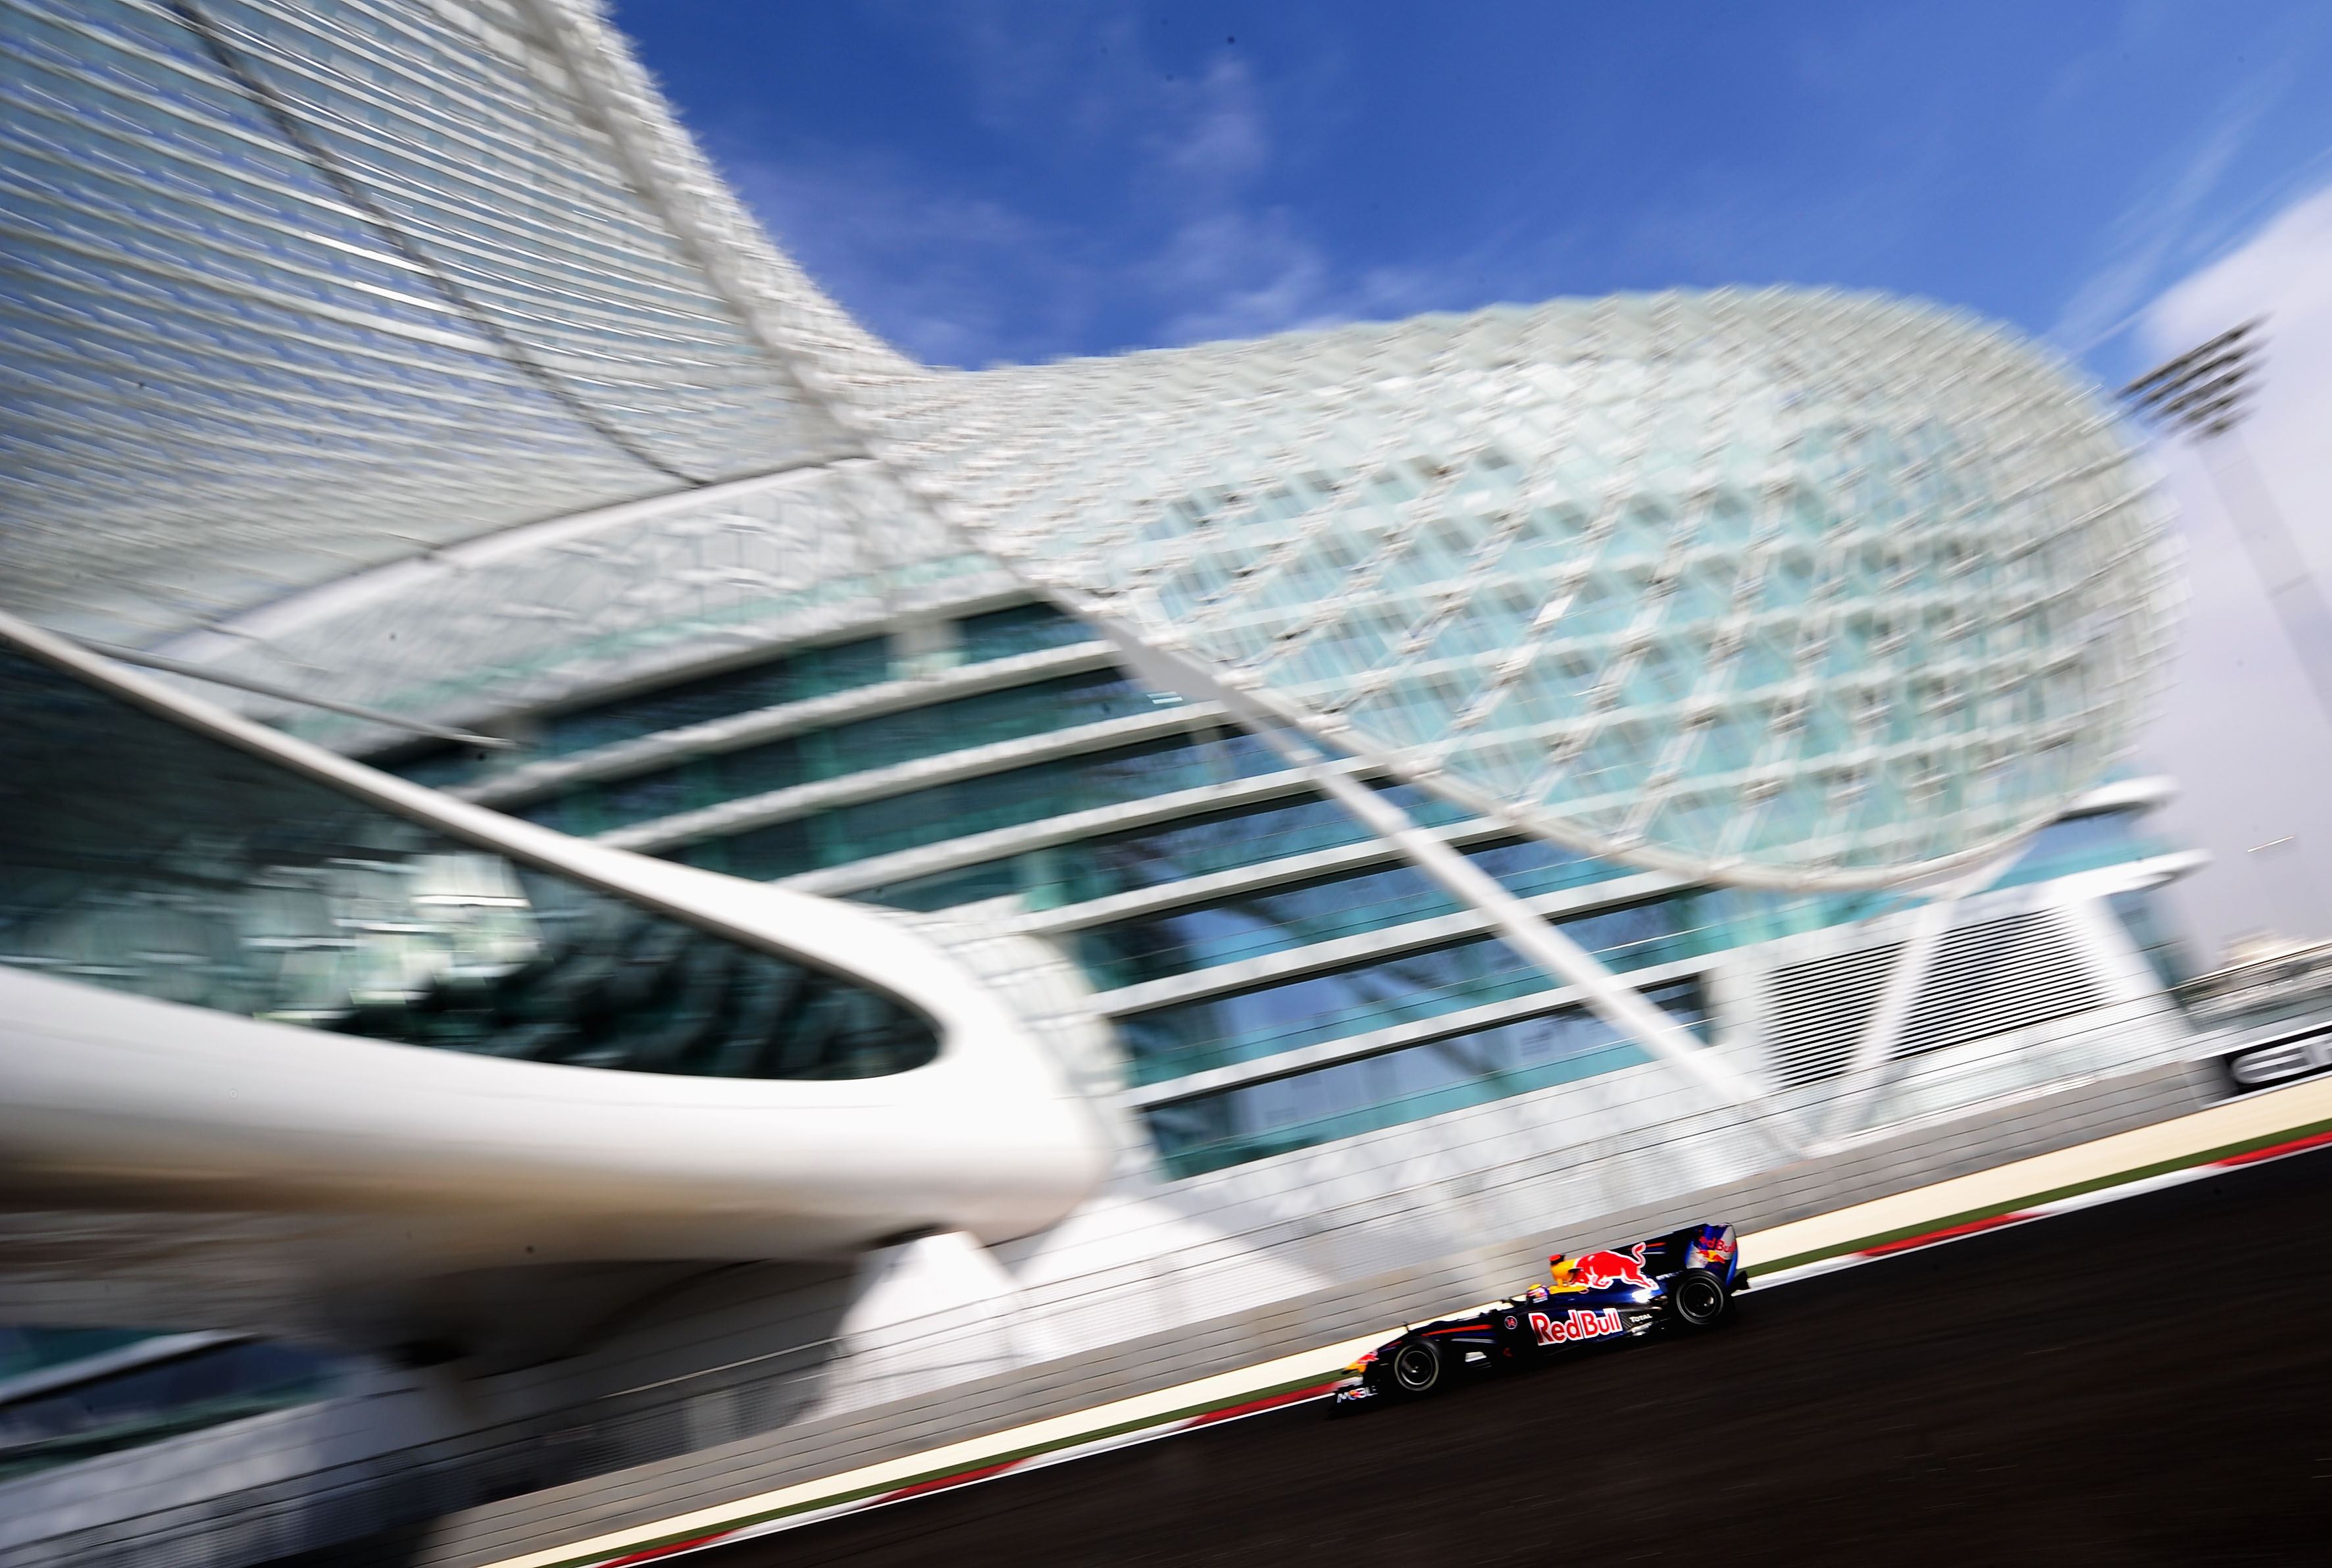 Abu Dhabi's Formula One debut is seen as the emirate's coming out party.